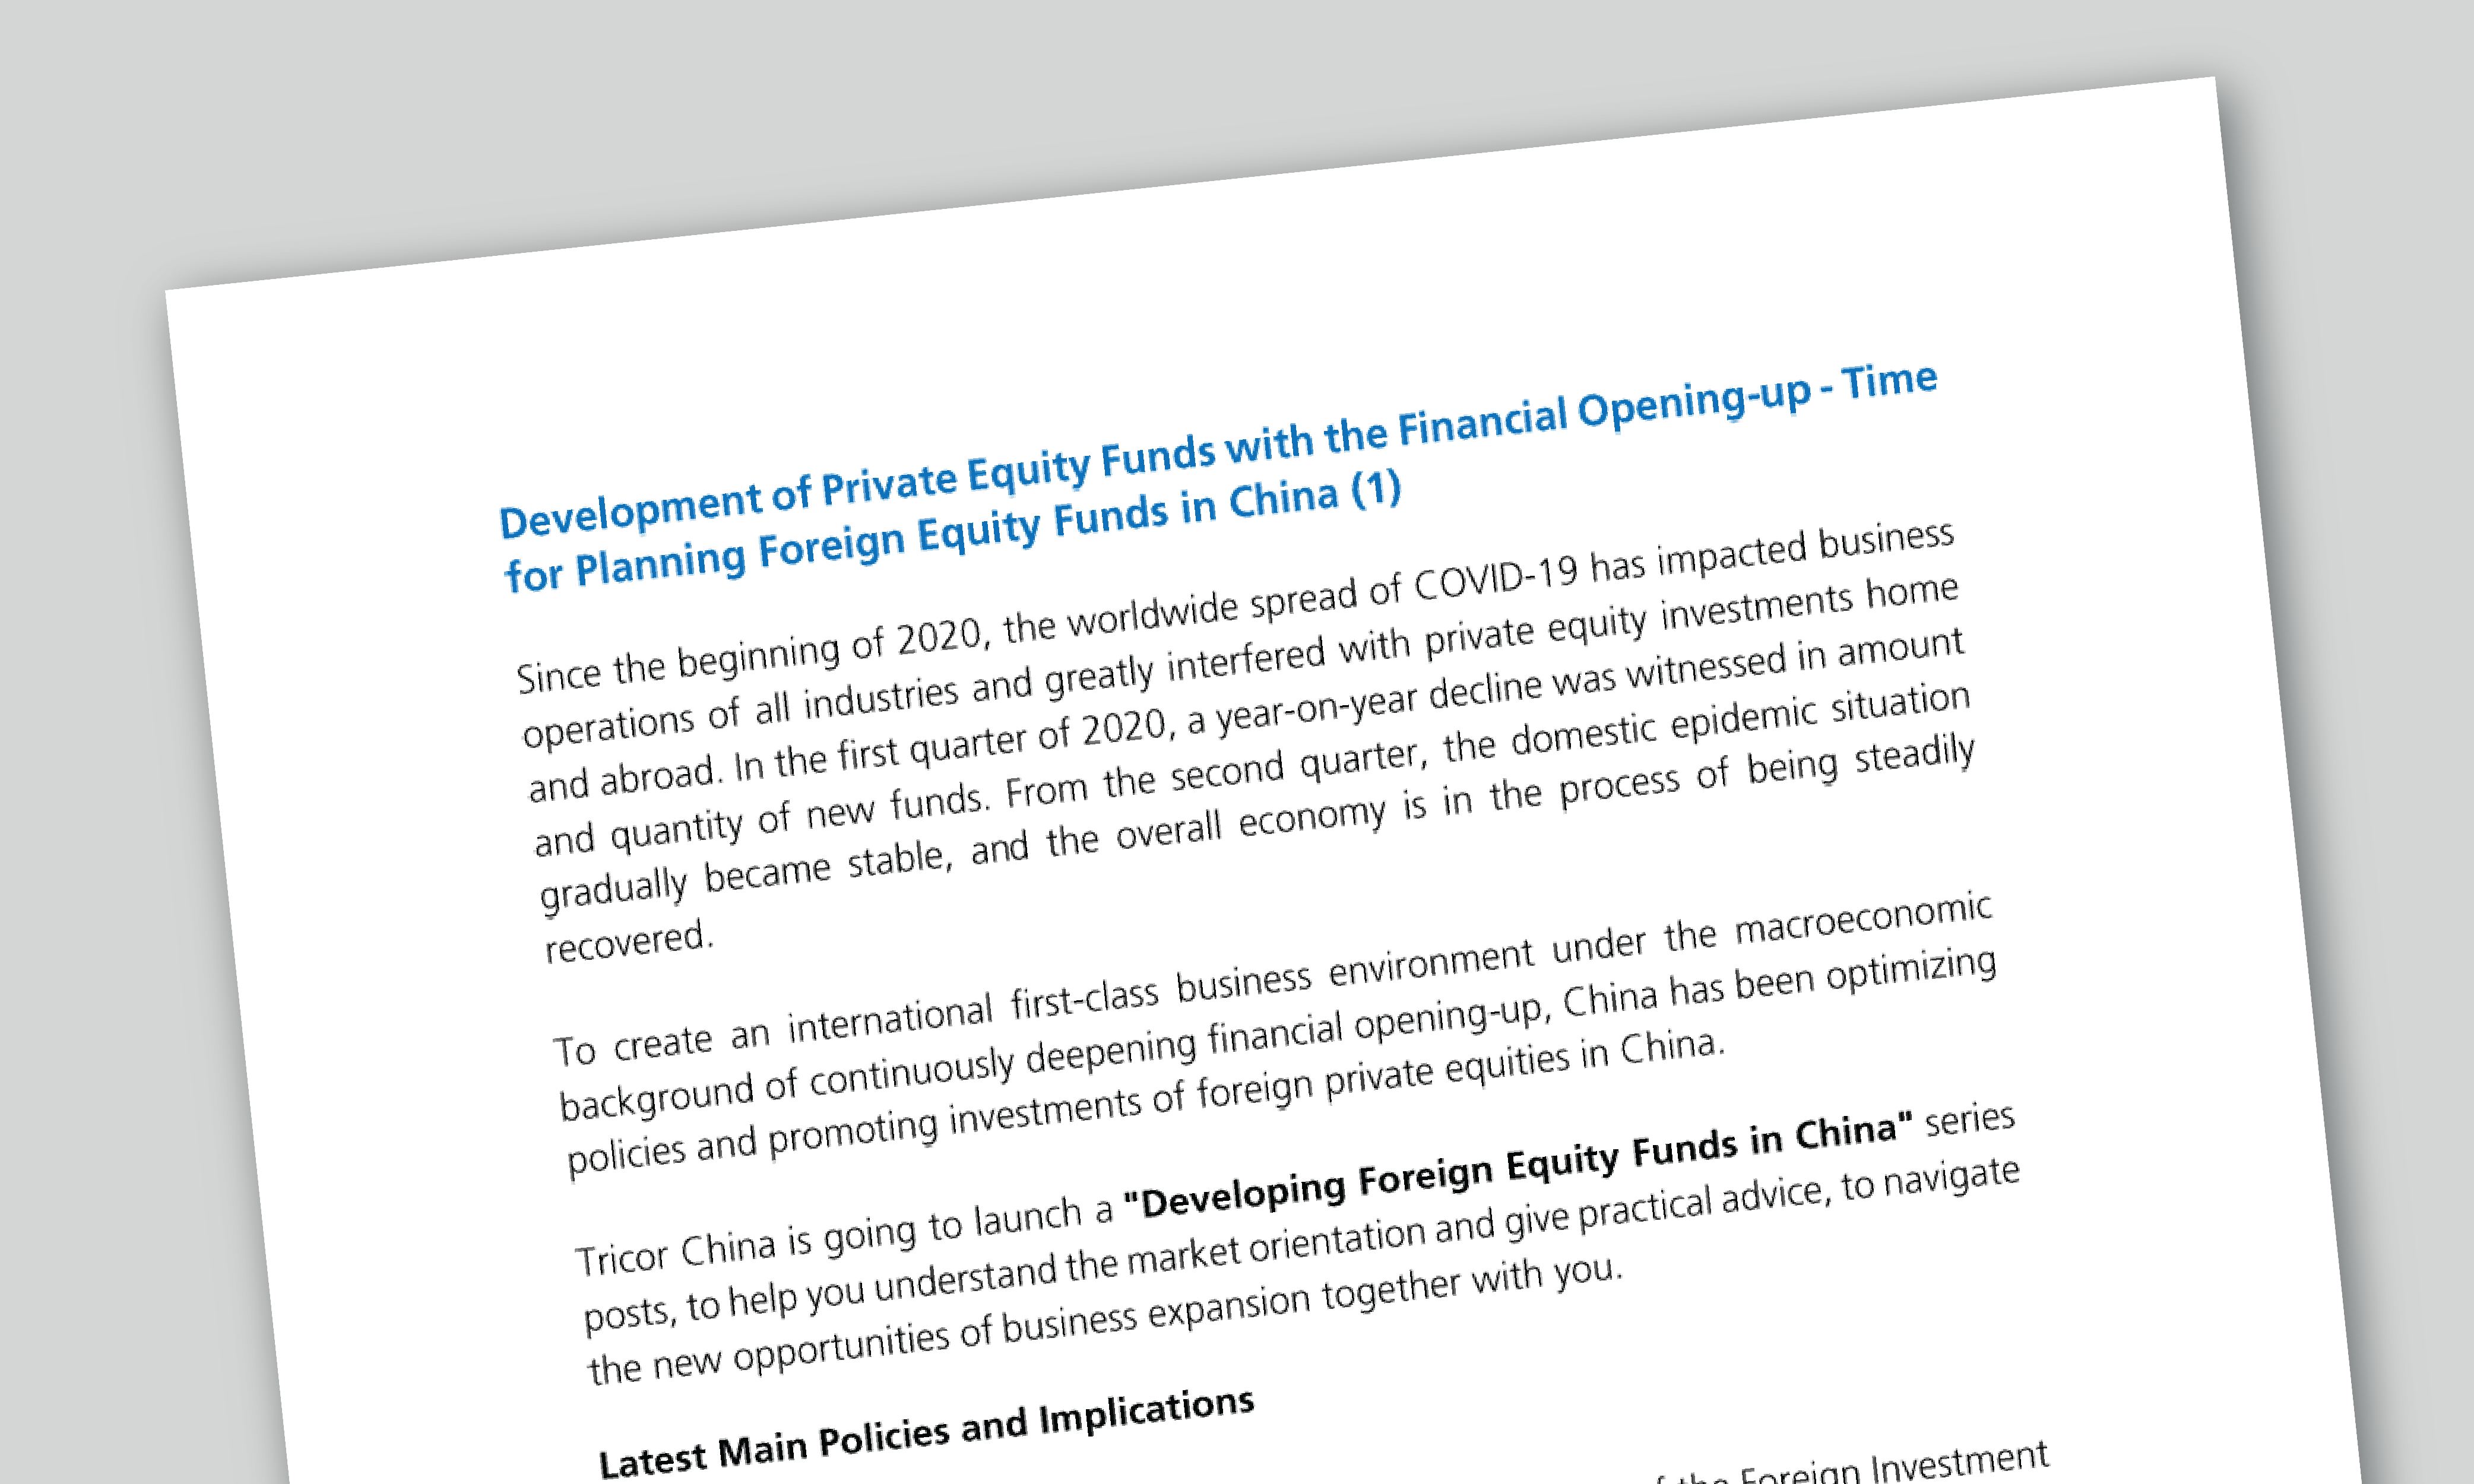 Development of Private Equity Funds with the Financial Opening-up - Time for Planning Foreign Equity Funds in China Cover Page